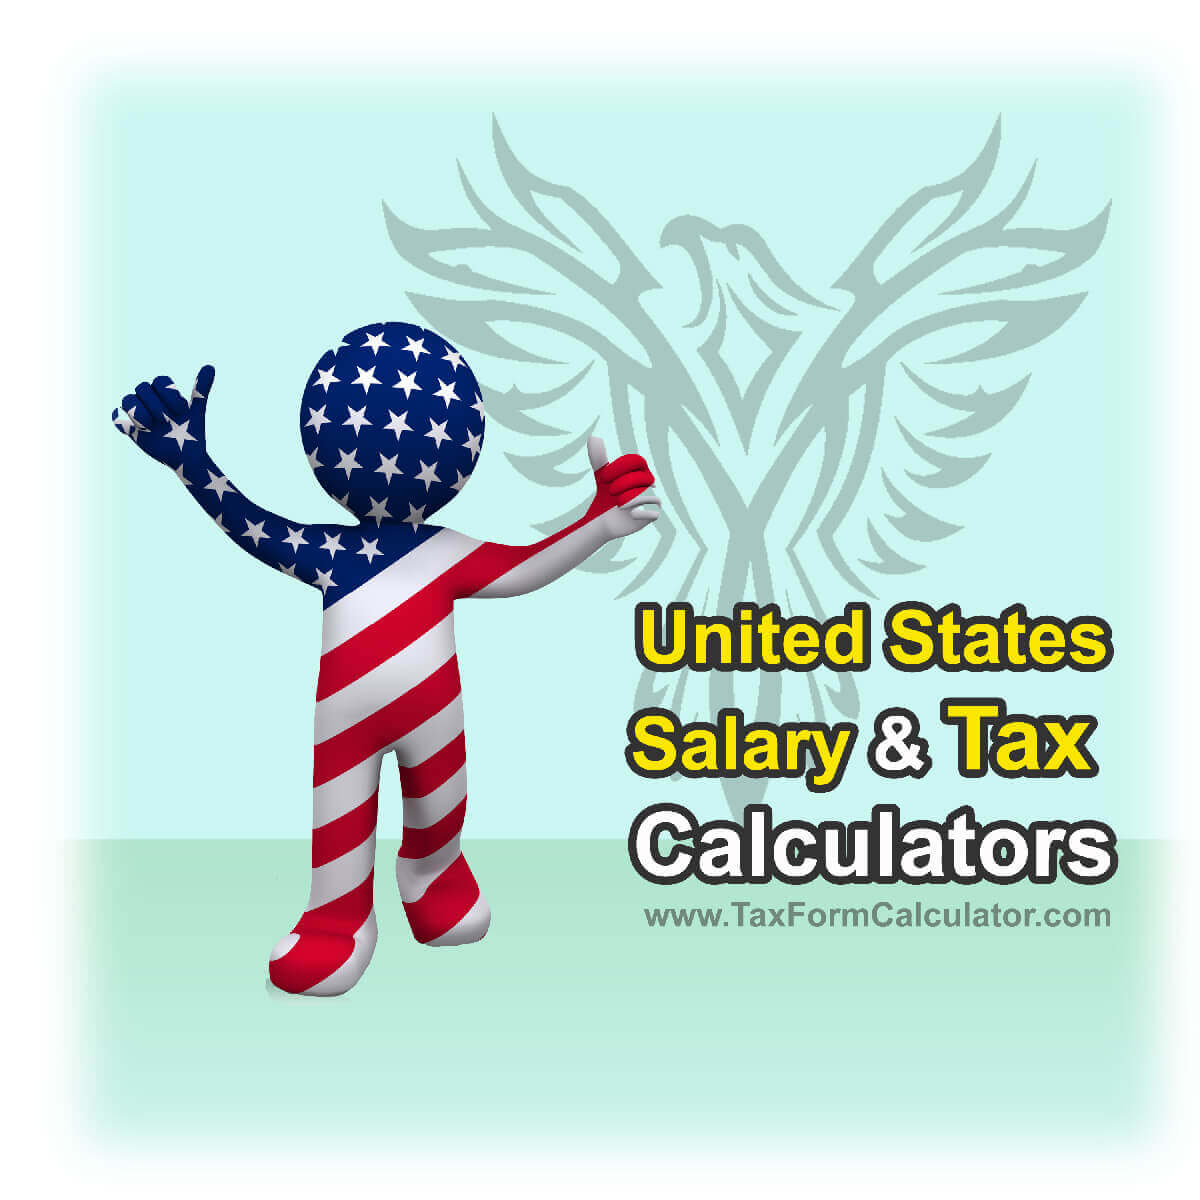 The Tax Form Calculator allows you to calculator your salary after tax and estimate your annual tax return to help reduce the amount of income tax you pay each year by making the most of tax credits and personal tax allowances